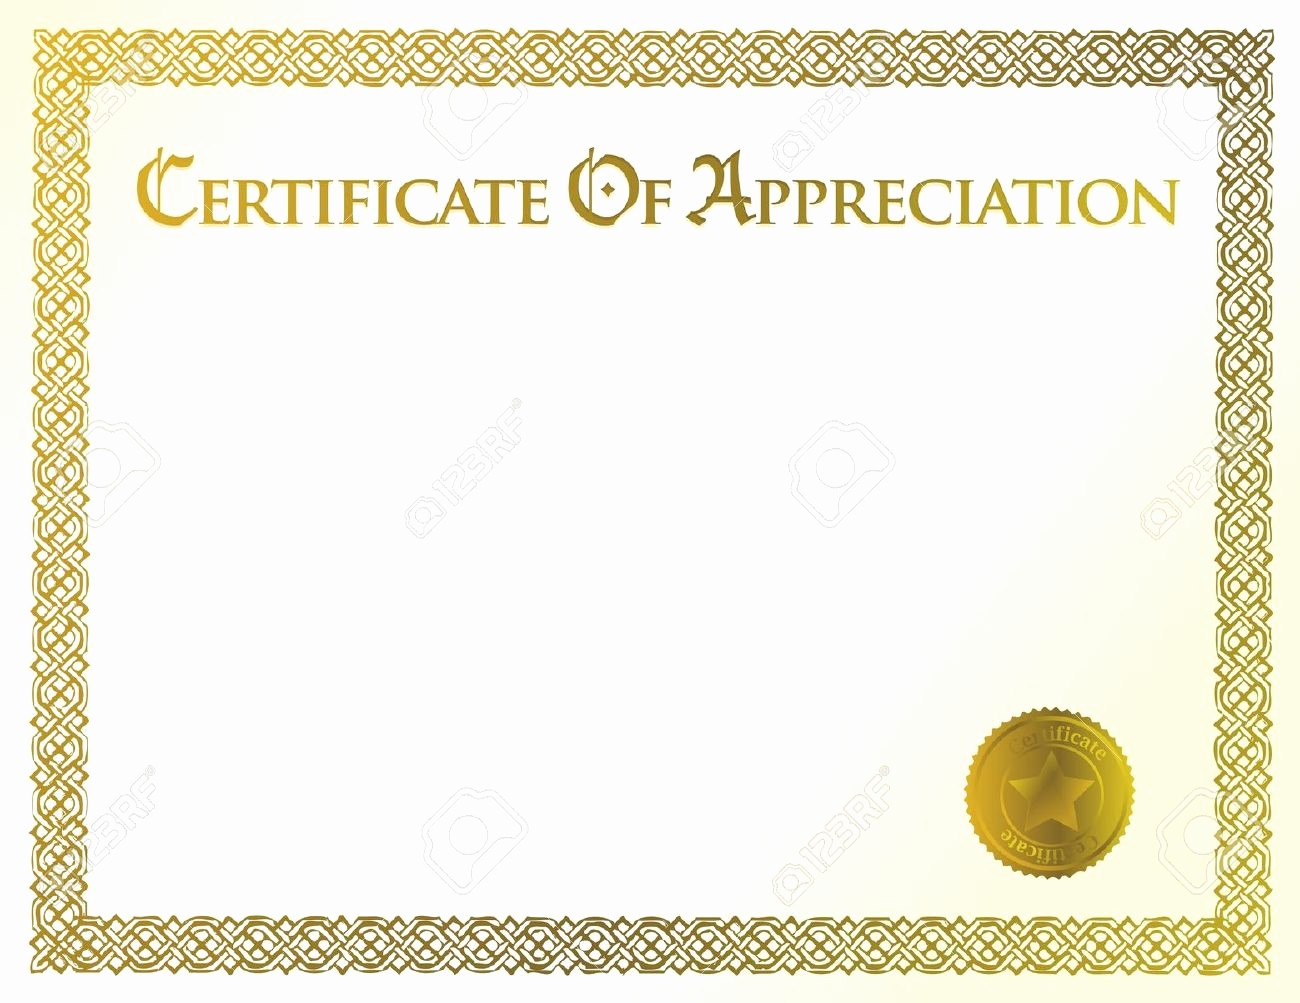 Blank Certificate Of Achievement Template Elegant Blank Certificate Template Sample Achievement Illustration